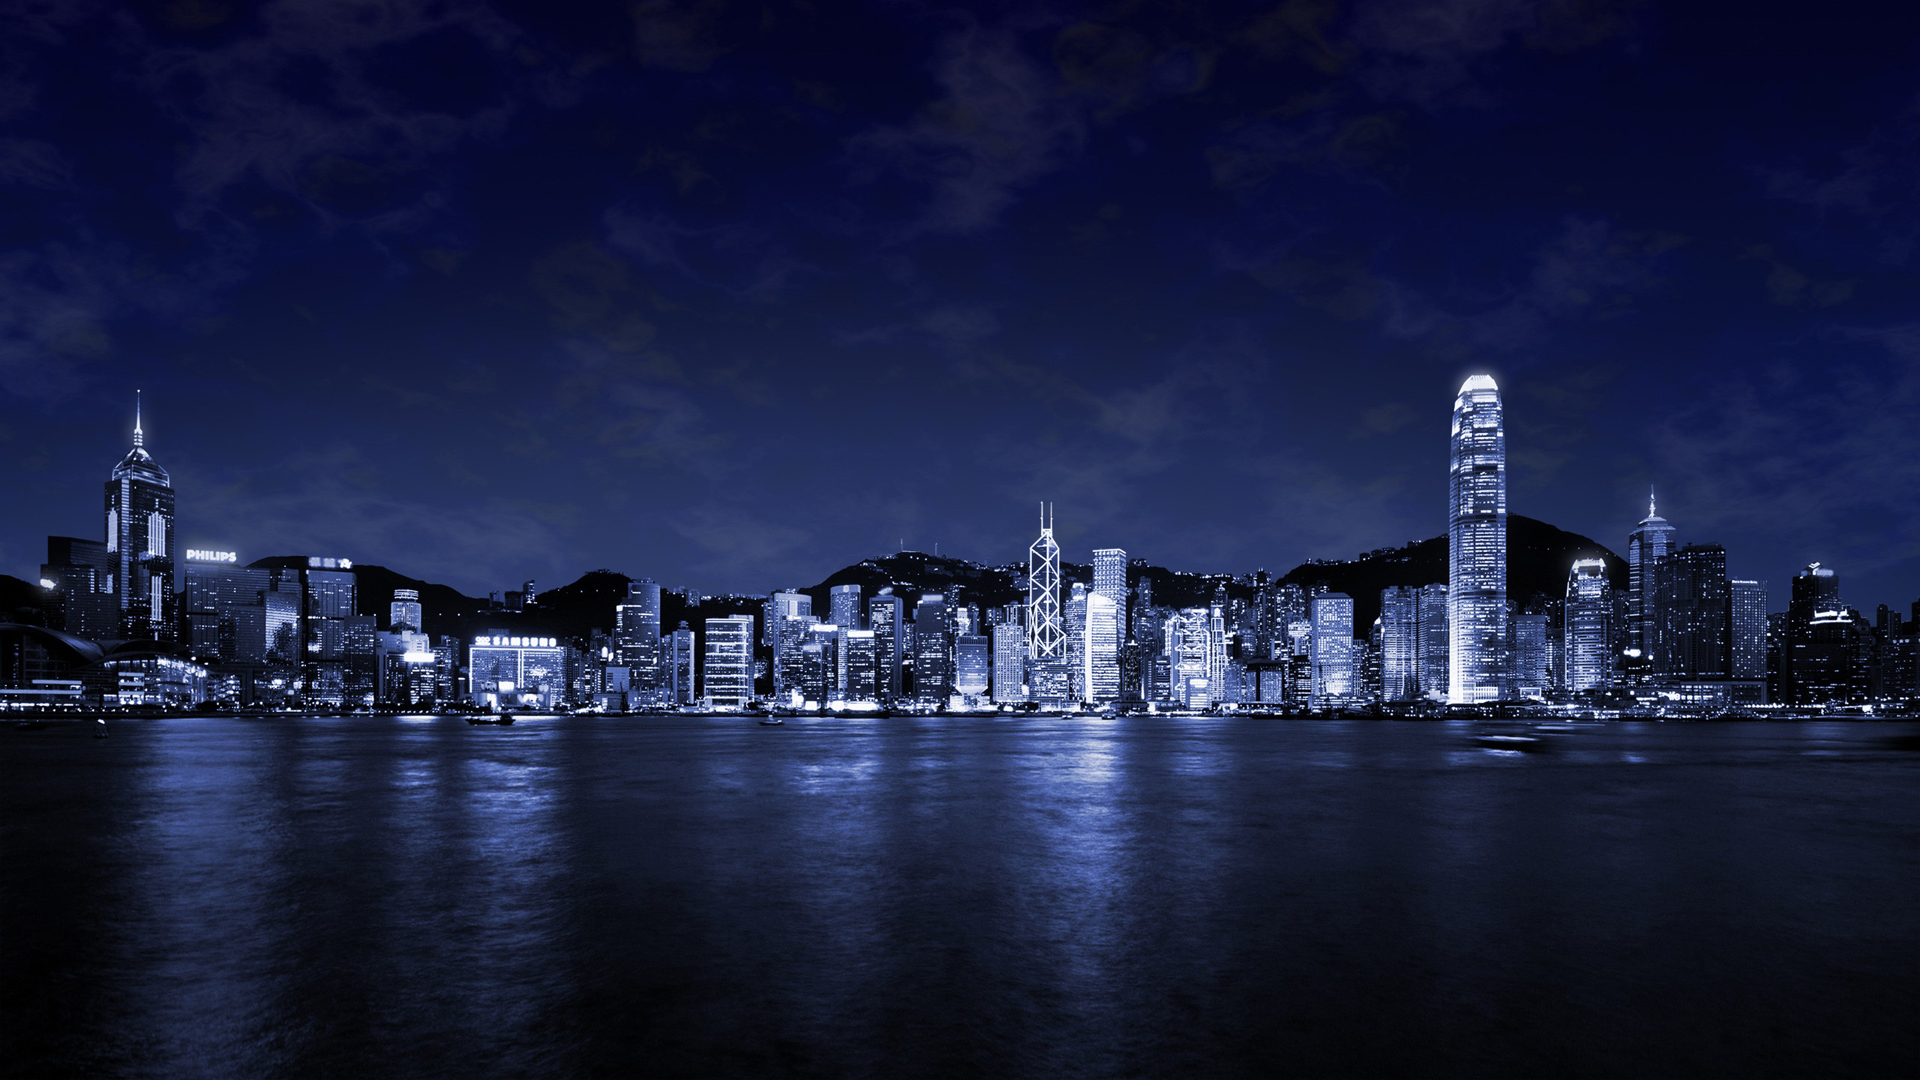 Download Wallpaper Photos city at night on the big water   1920x1080 1920x1080